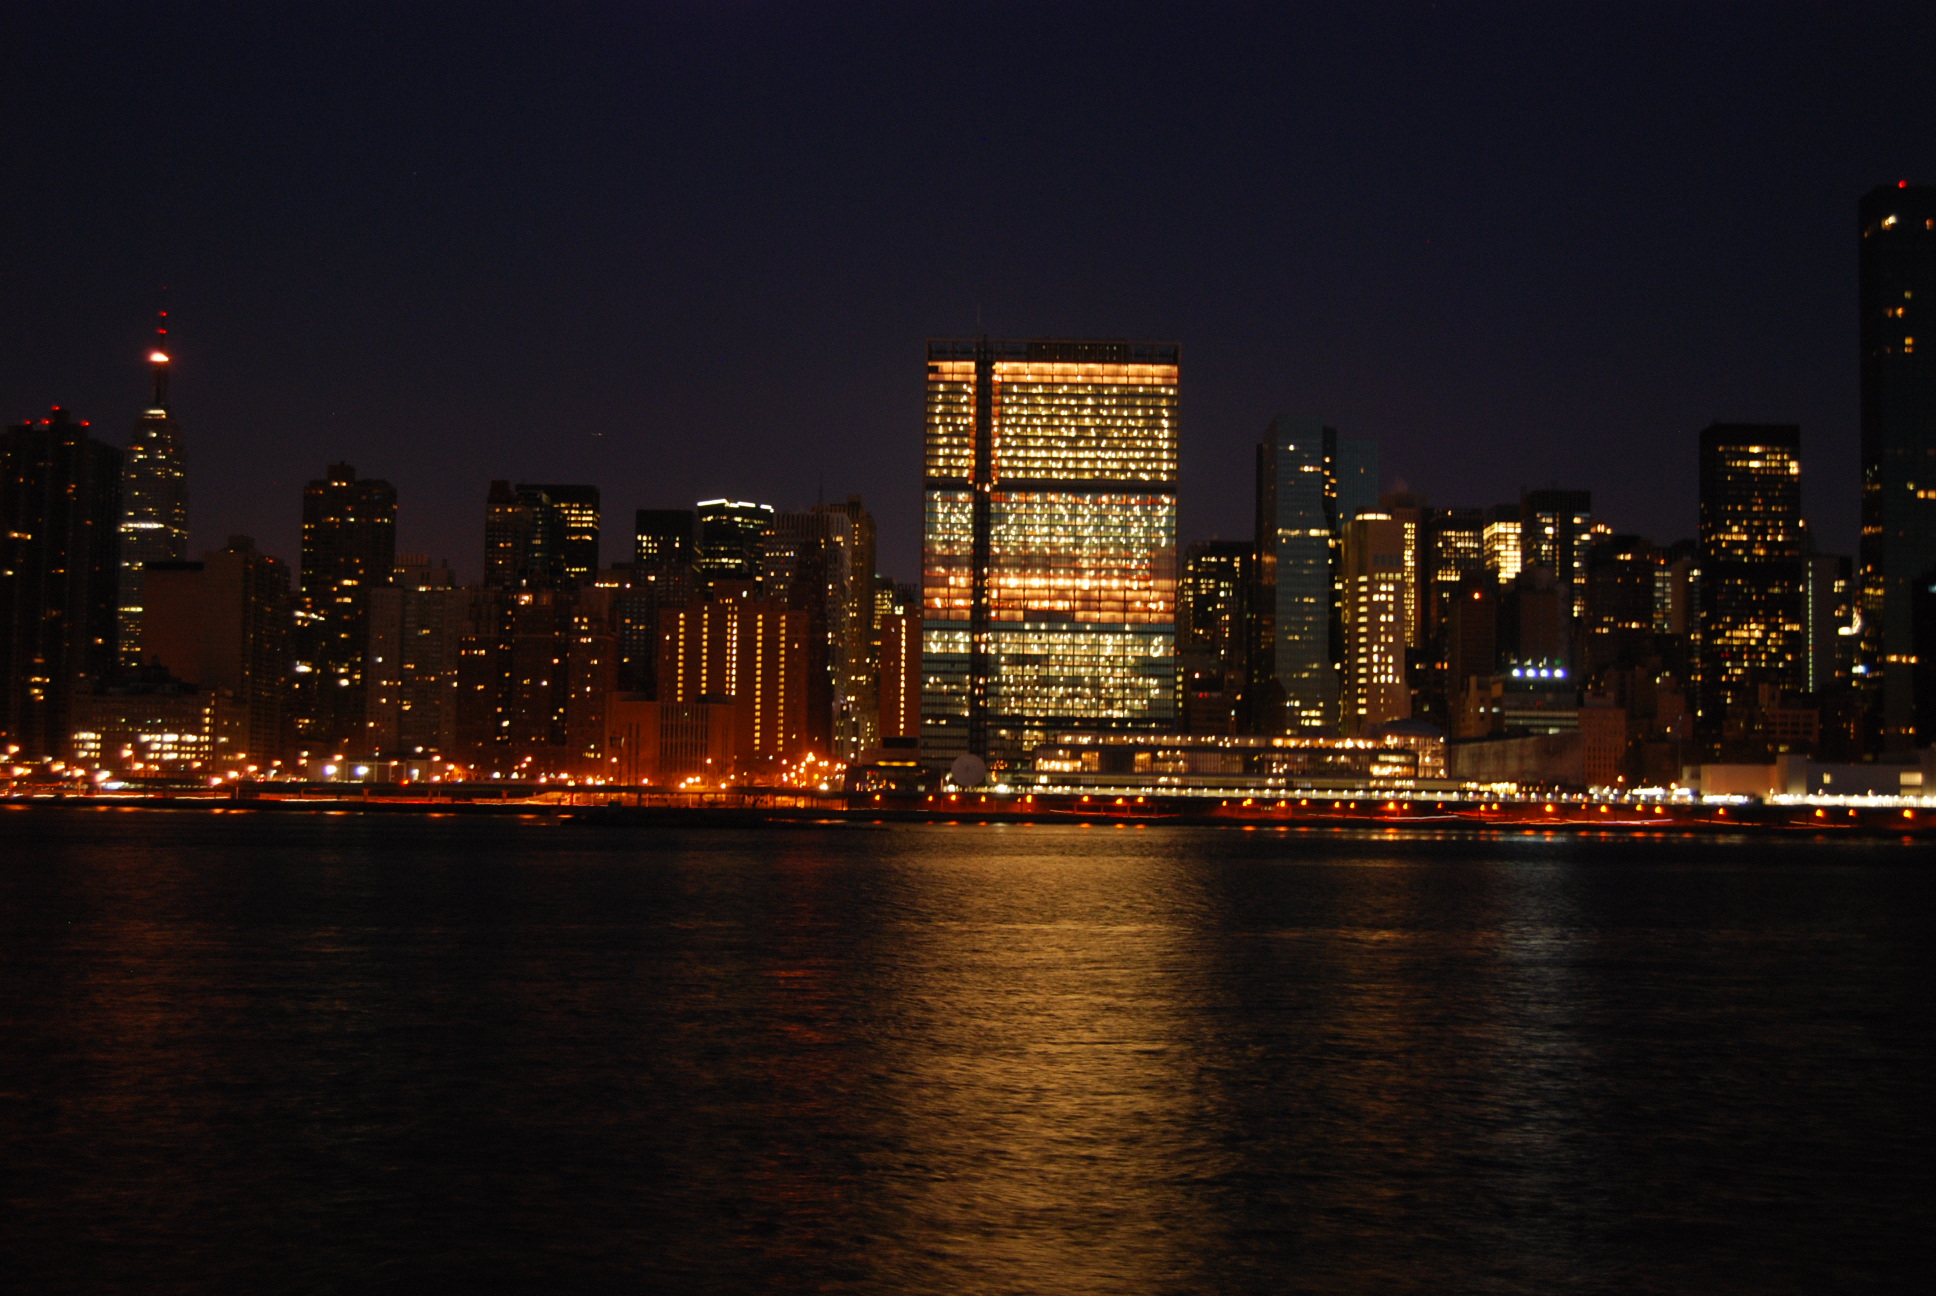 UN building at night